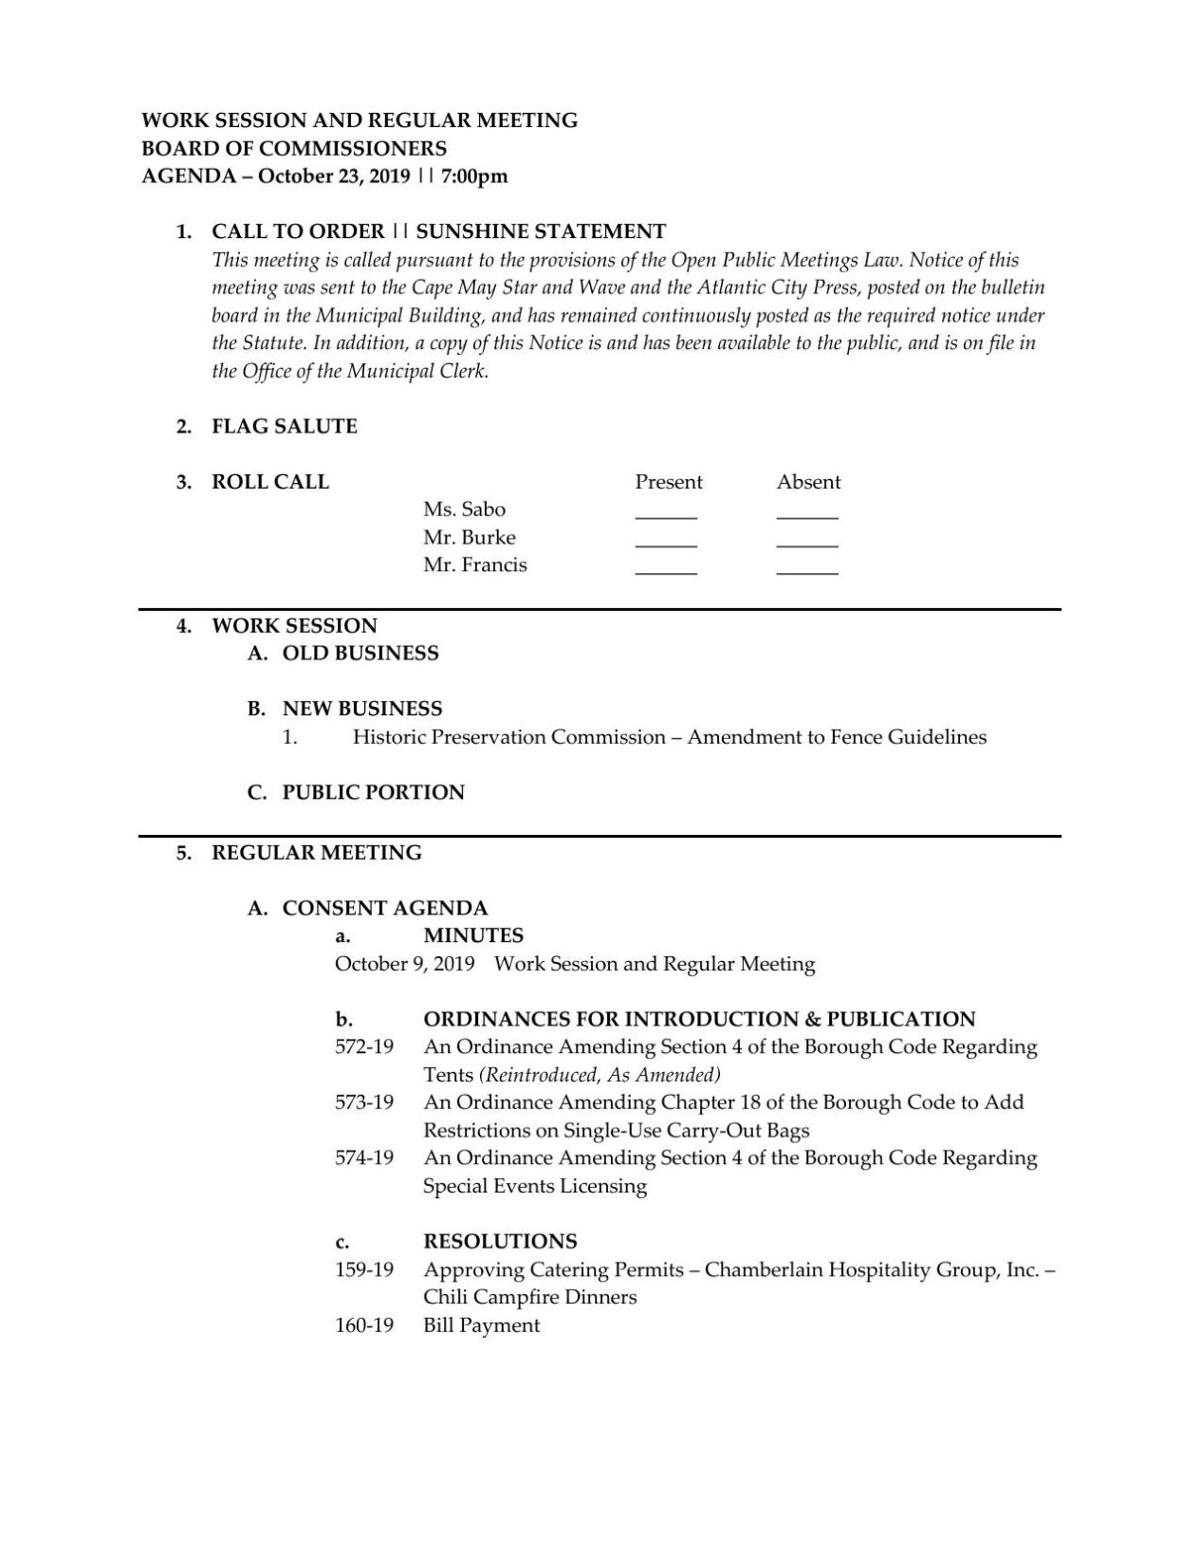 West Cape May Borough Commissioners Agenda Oct. 23, 2019